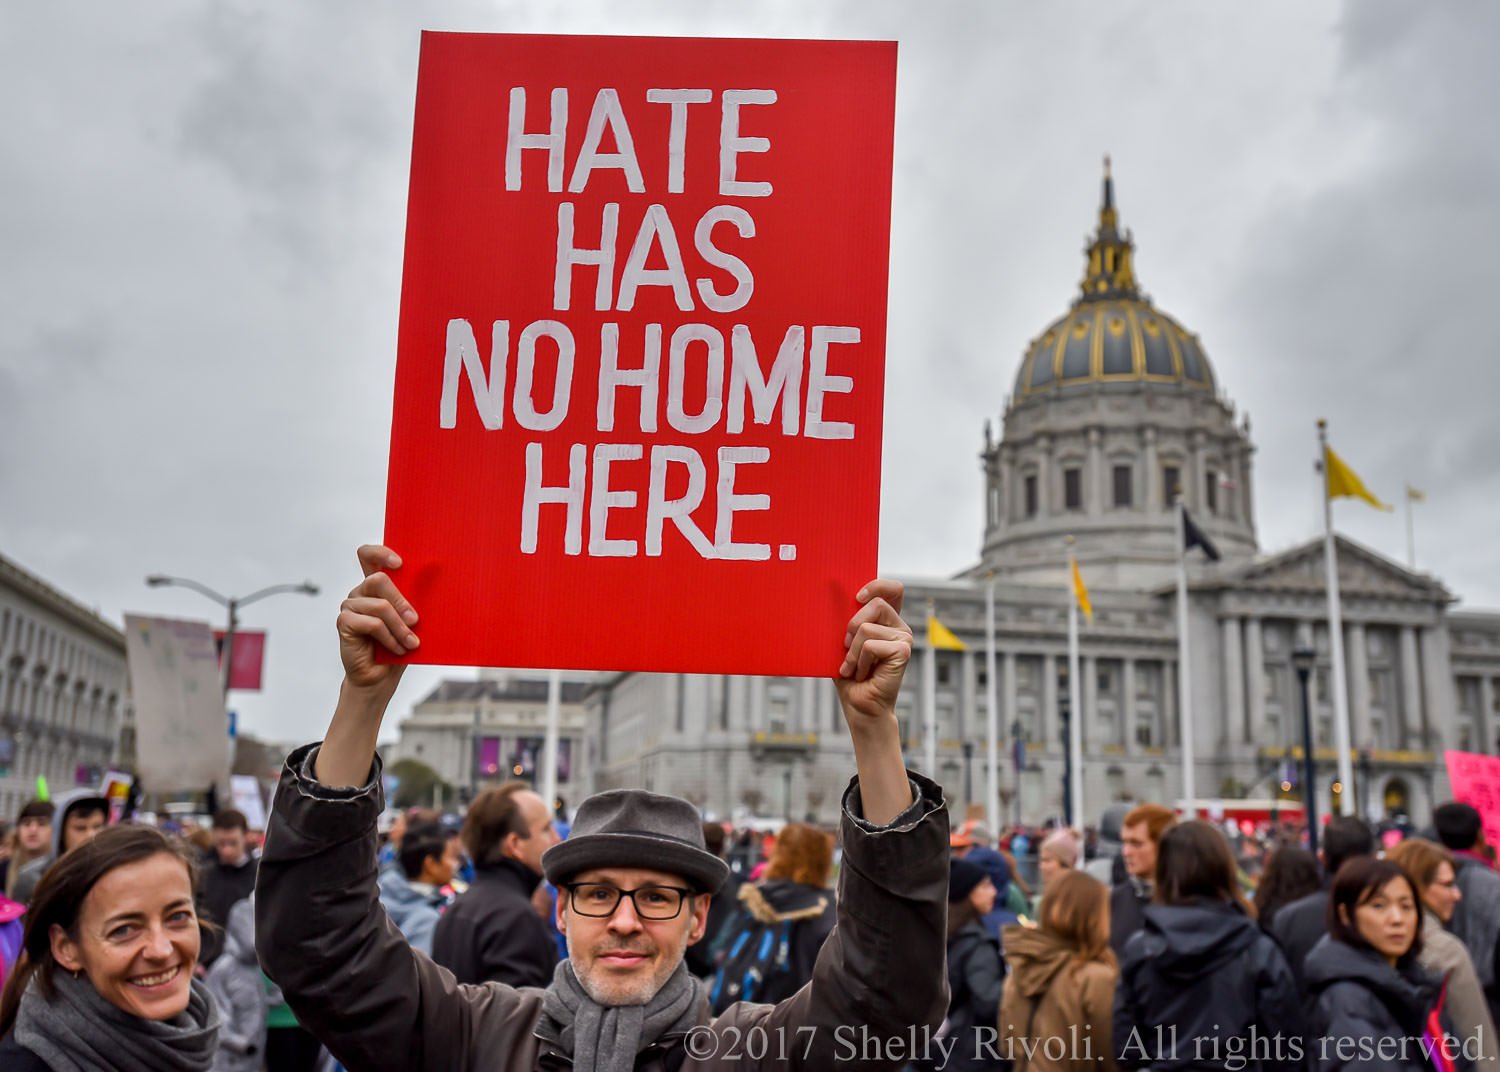 Hate has no home here sign held at San Francisco Women's March 2017